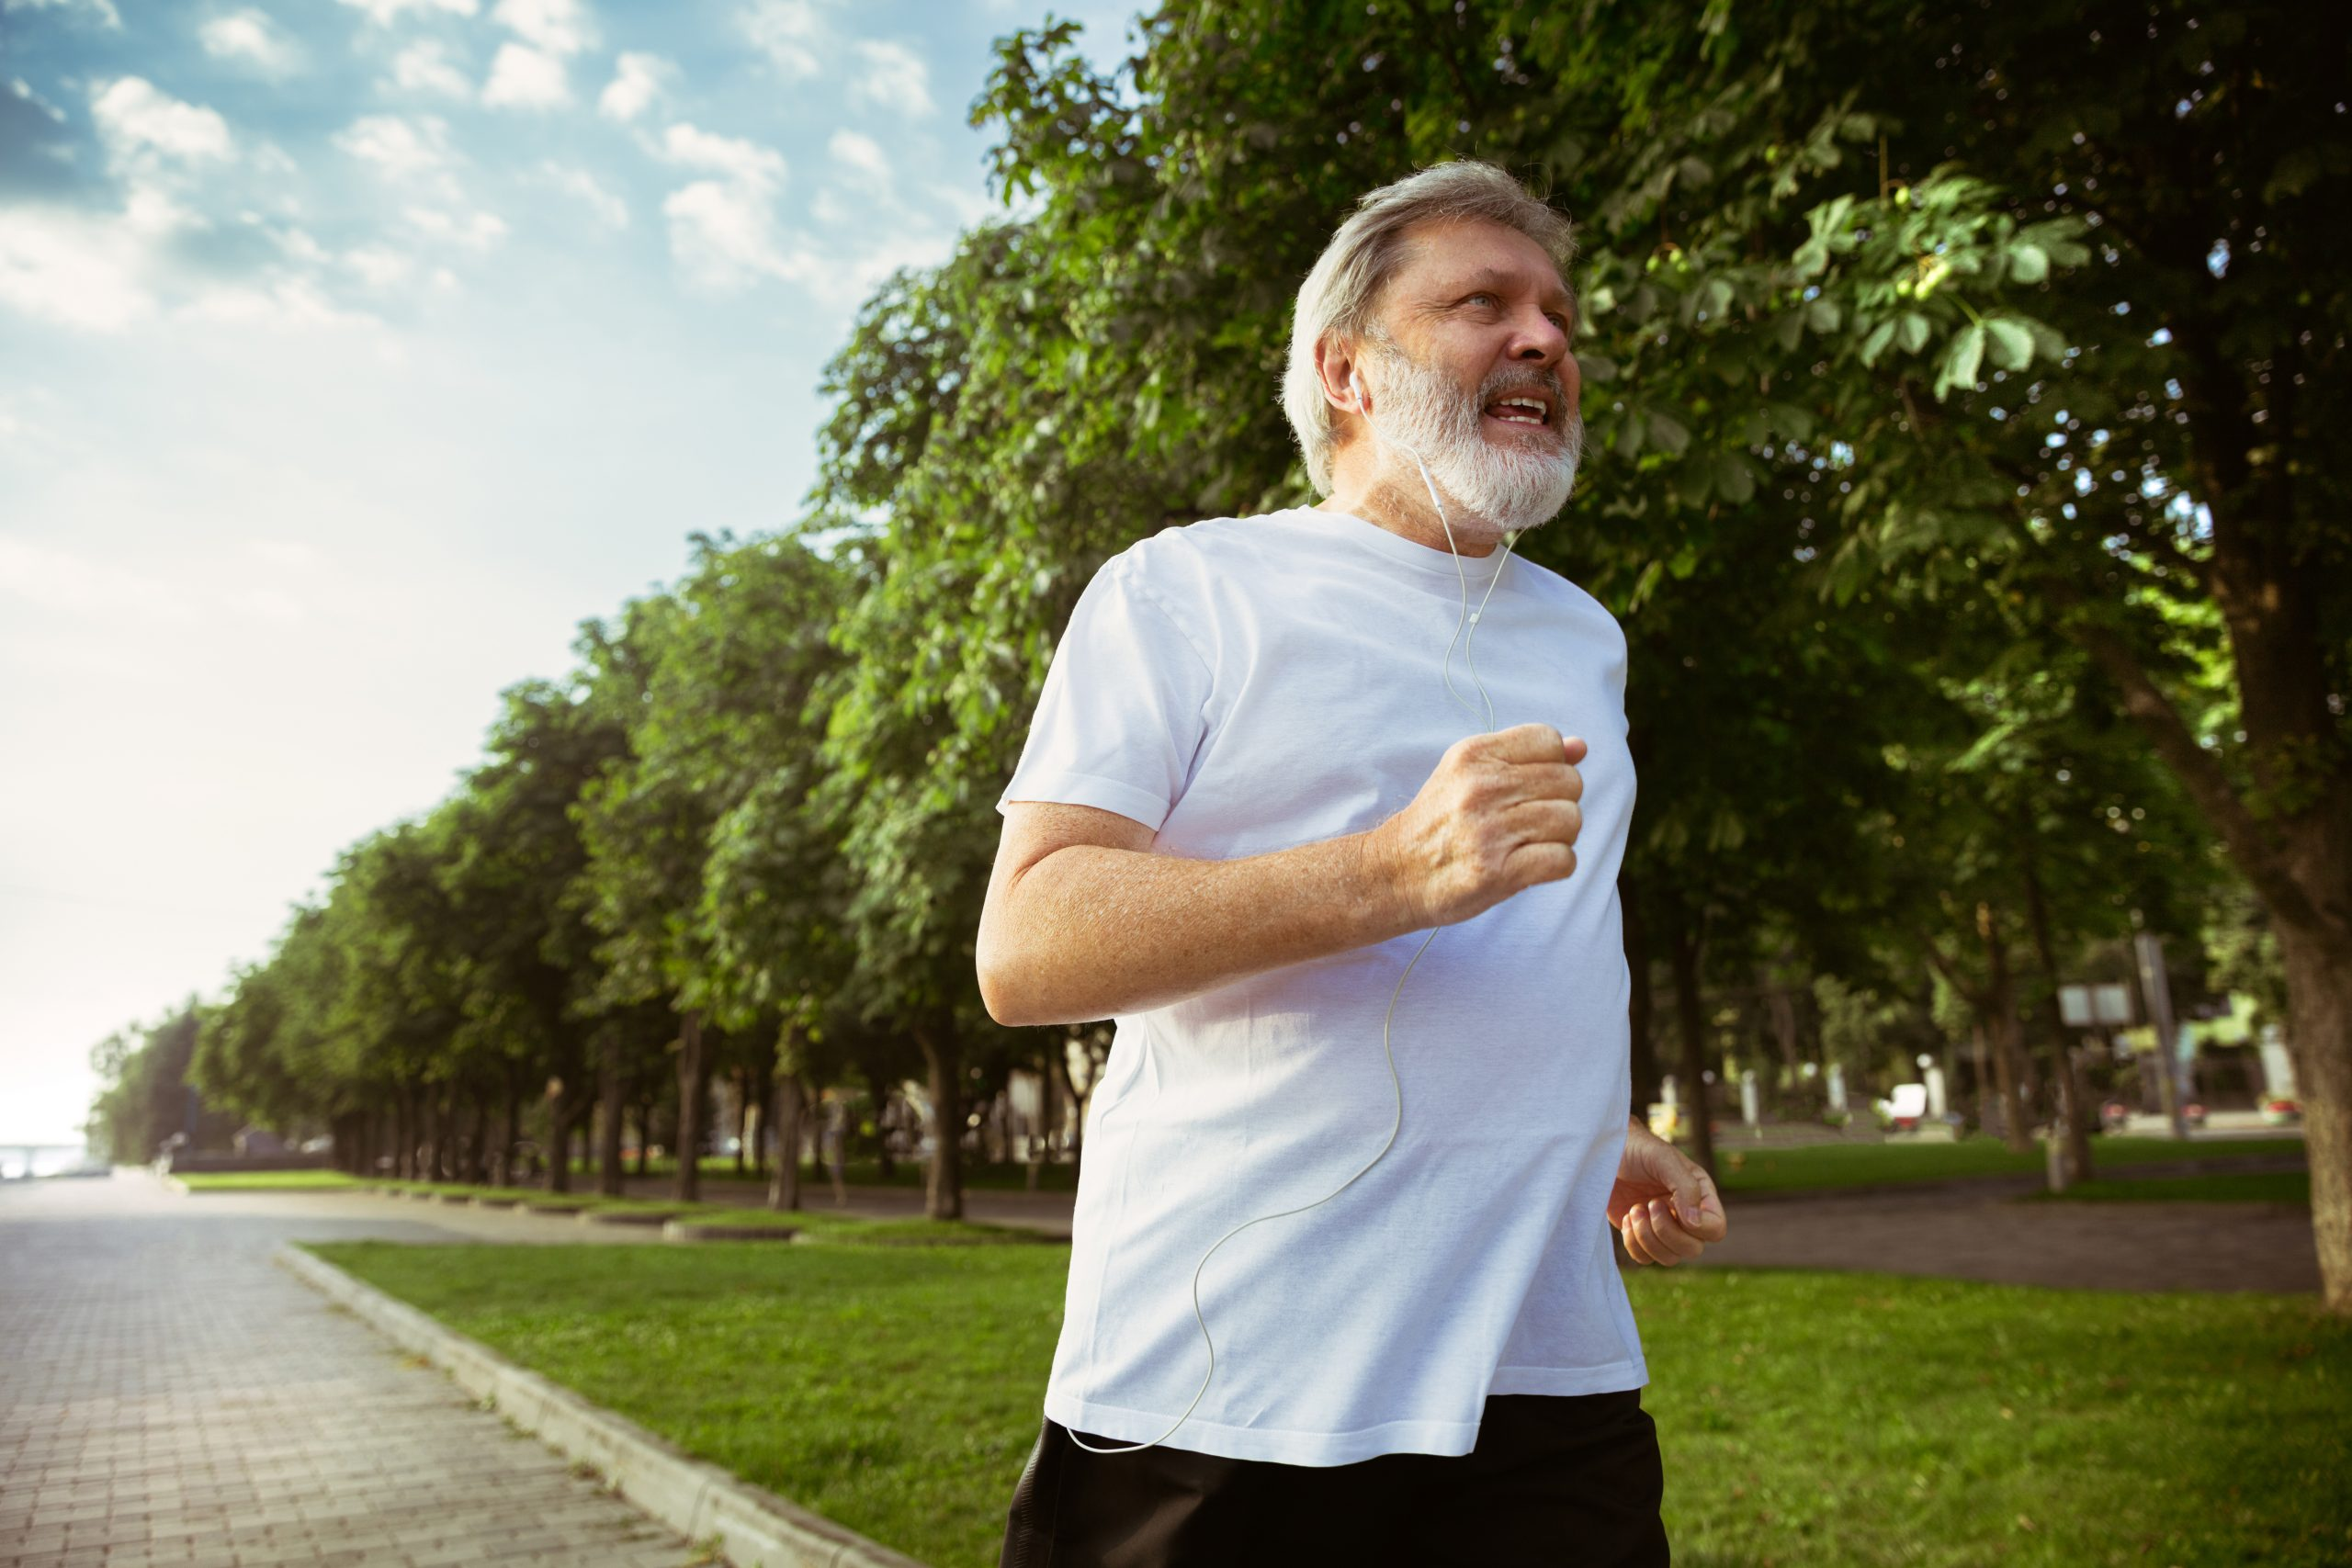 Living well – Looking after yourself as you get older